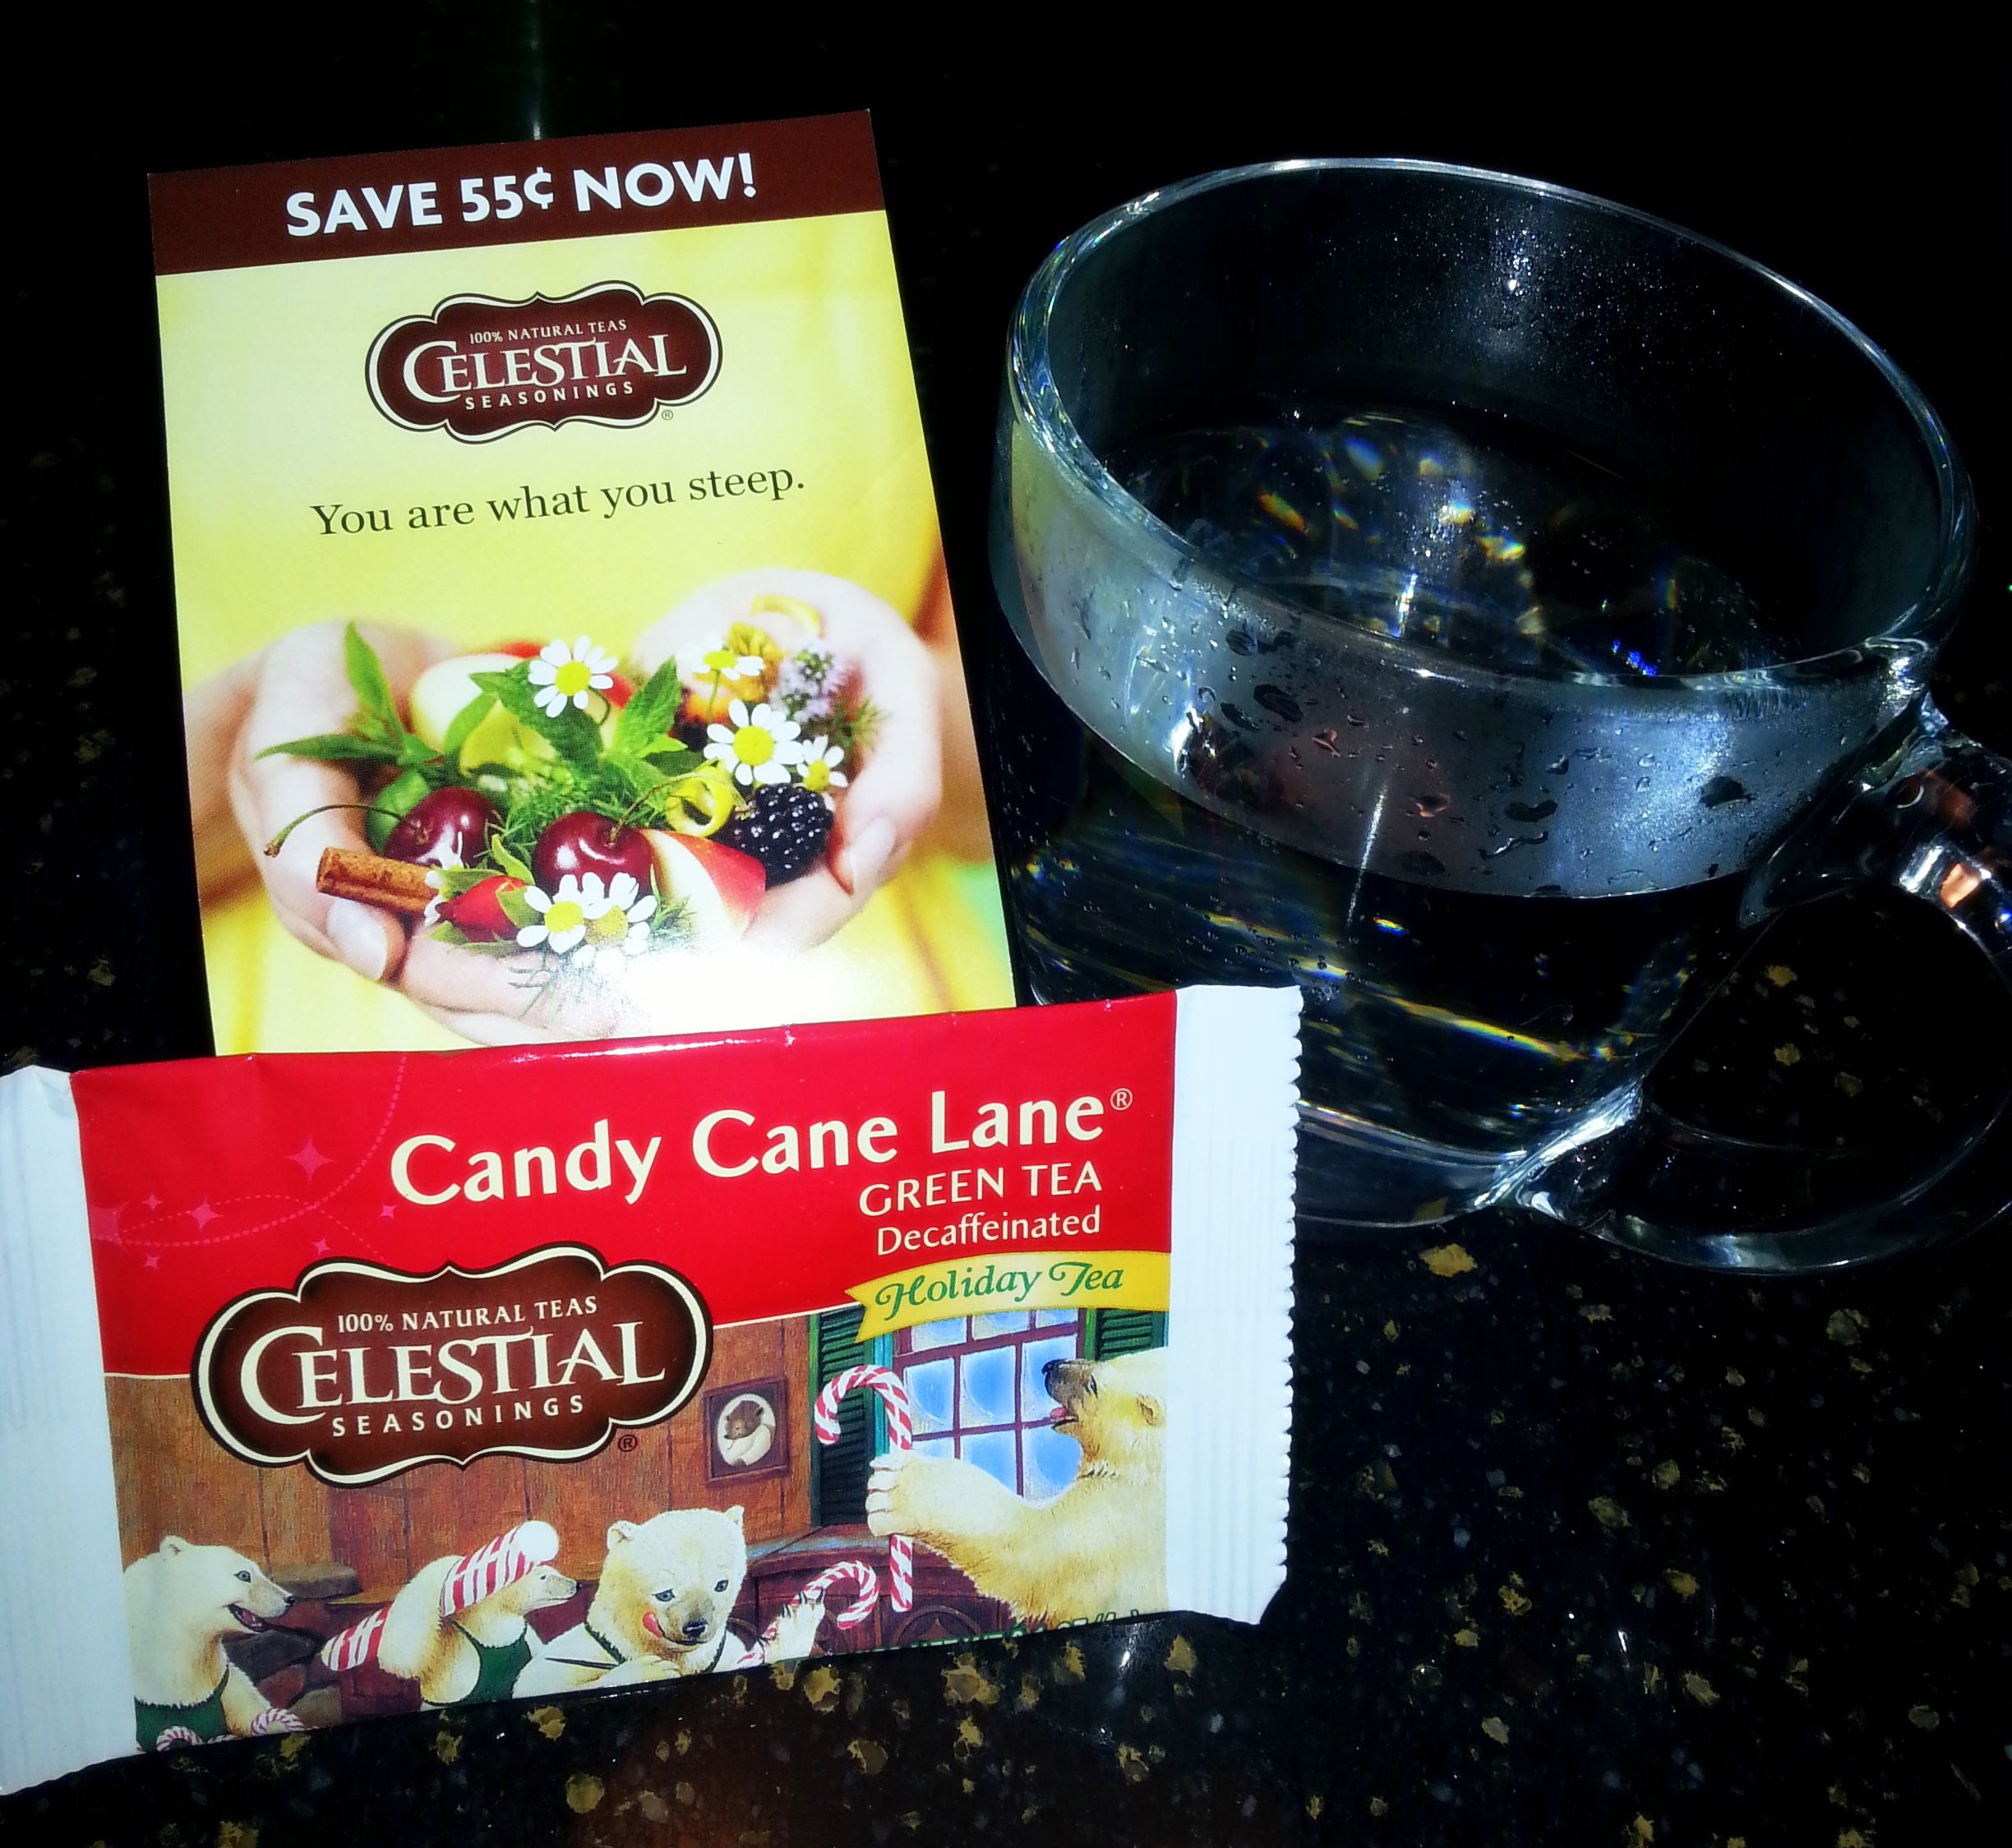 Live life well with a cup of tea a day! Celestial